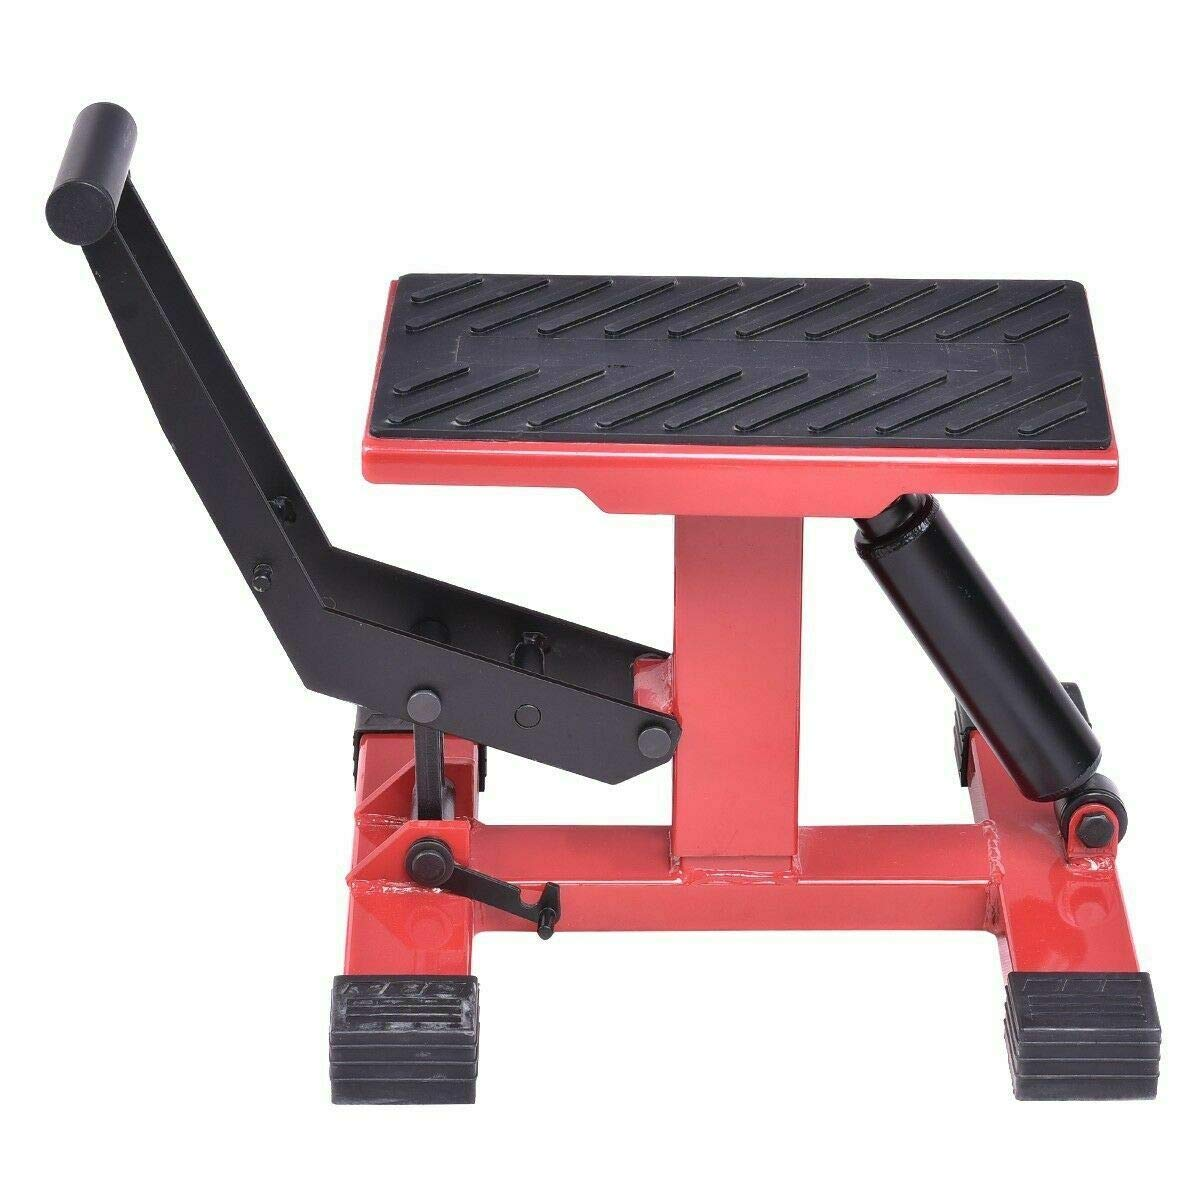 Adumly Motorcycle Dirt Bike Lift Table Lift Stand Height Adjustable W/Damping